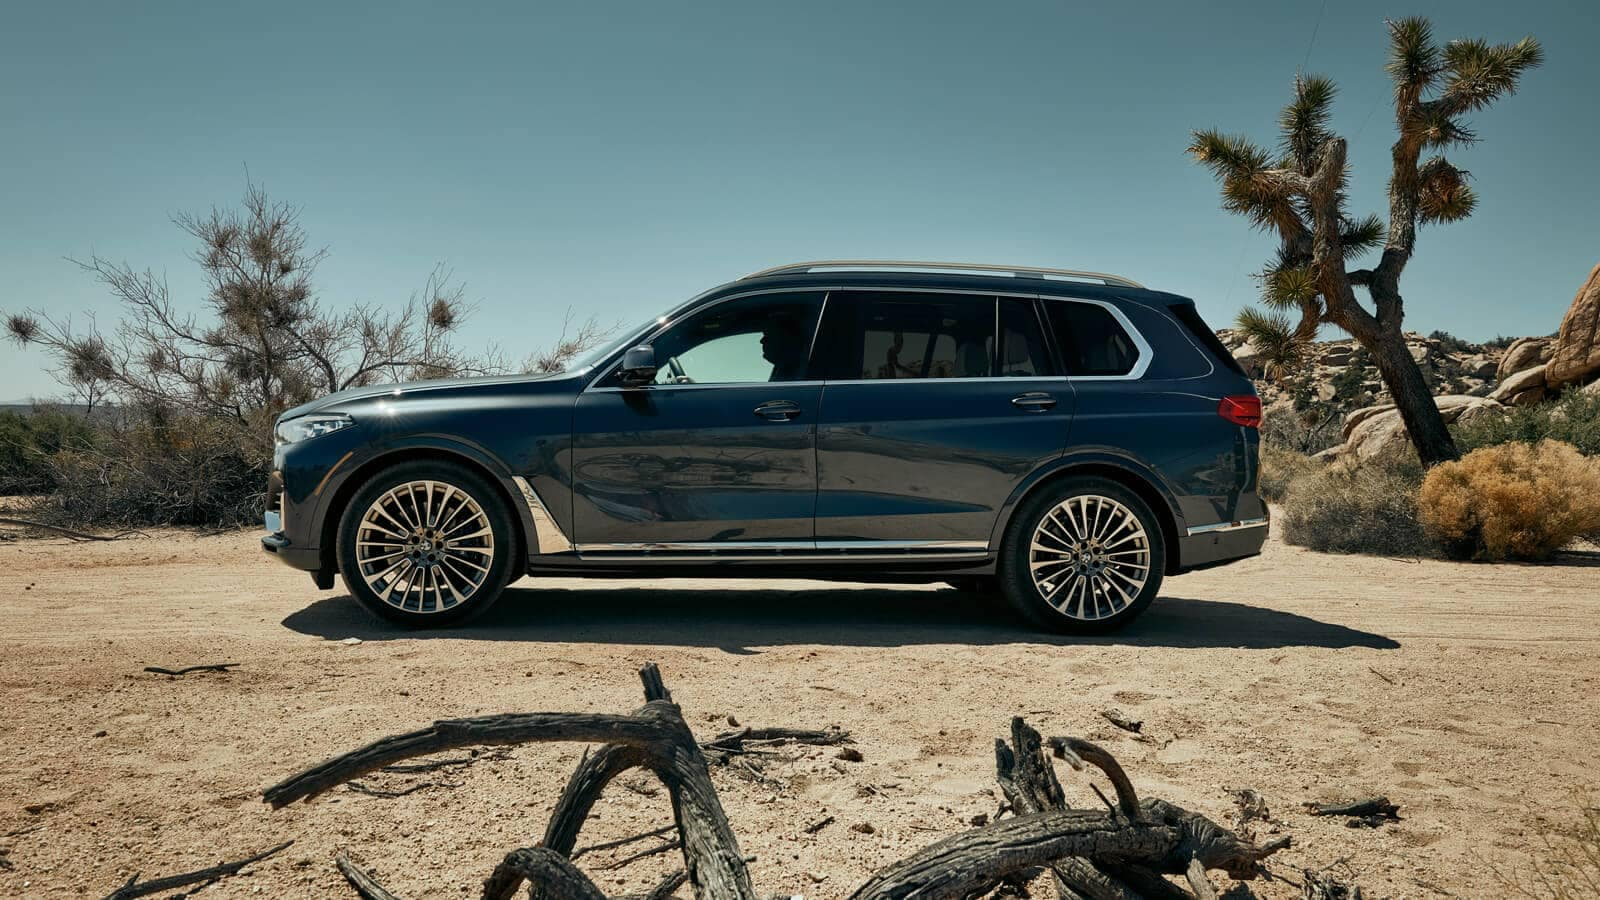 2019 BMW X7 stunning profile